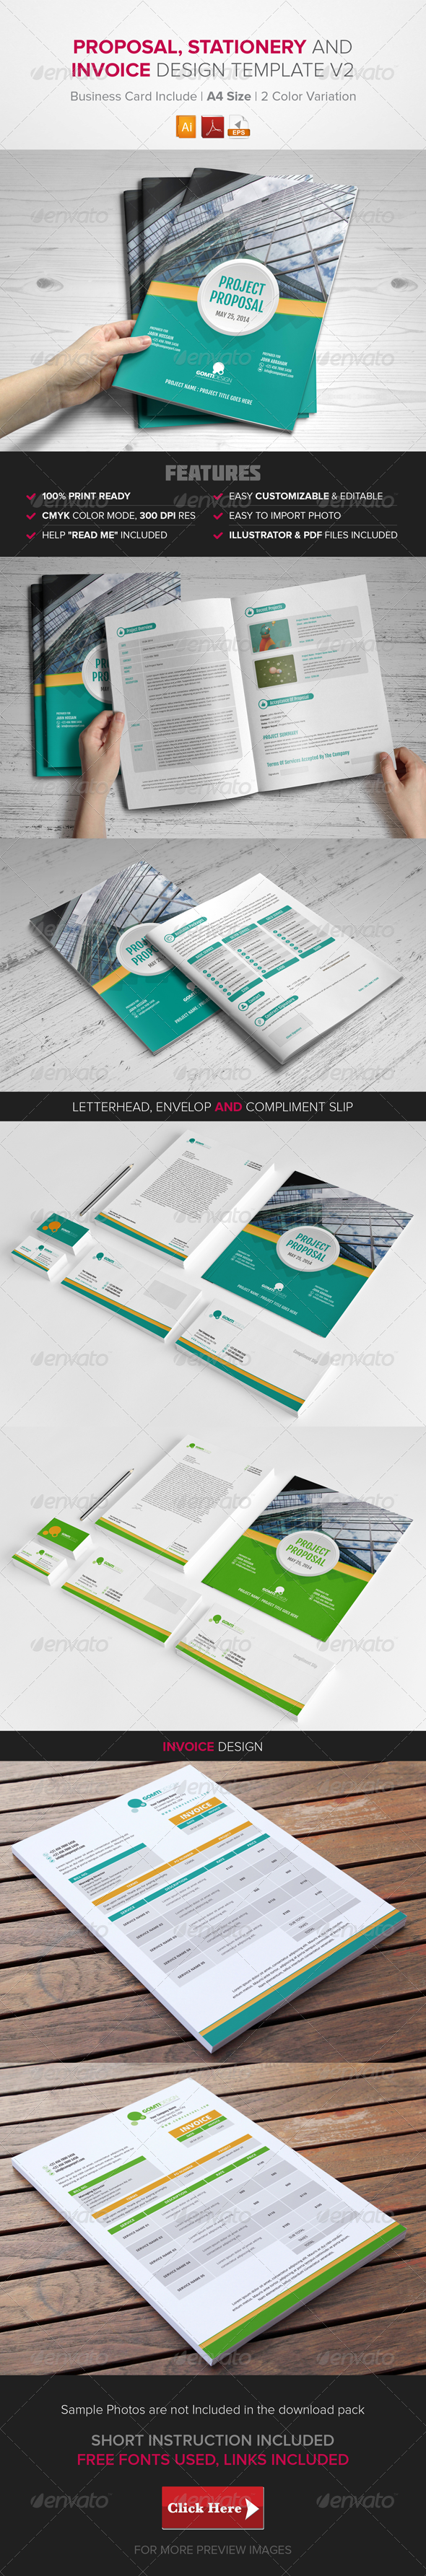 GraphicRiver Proposal Stationary & Invoice Design Template v2 8613693